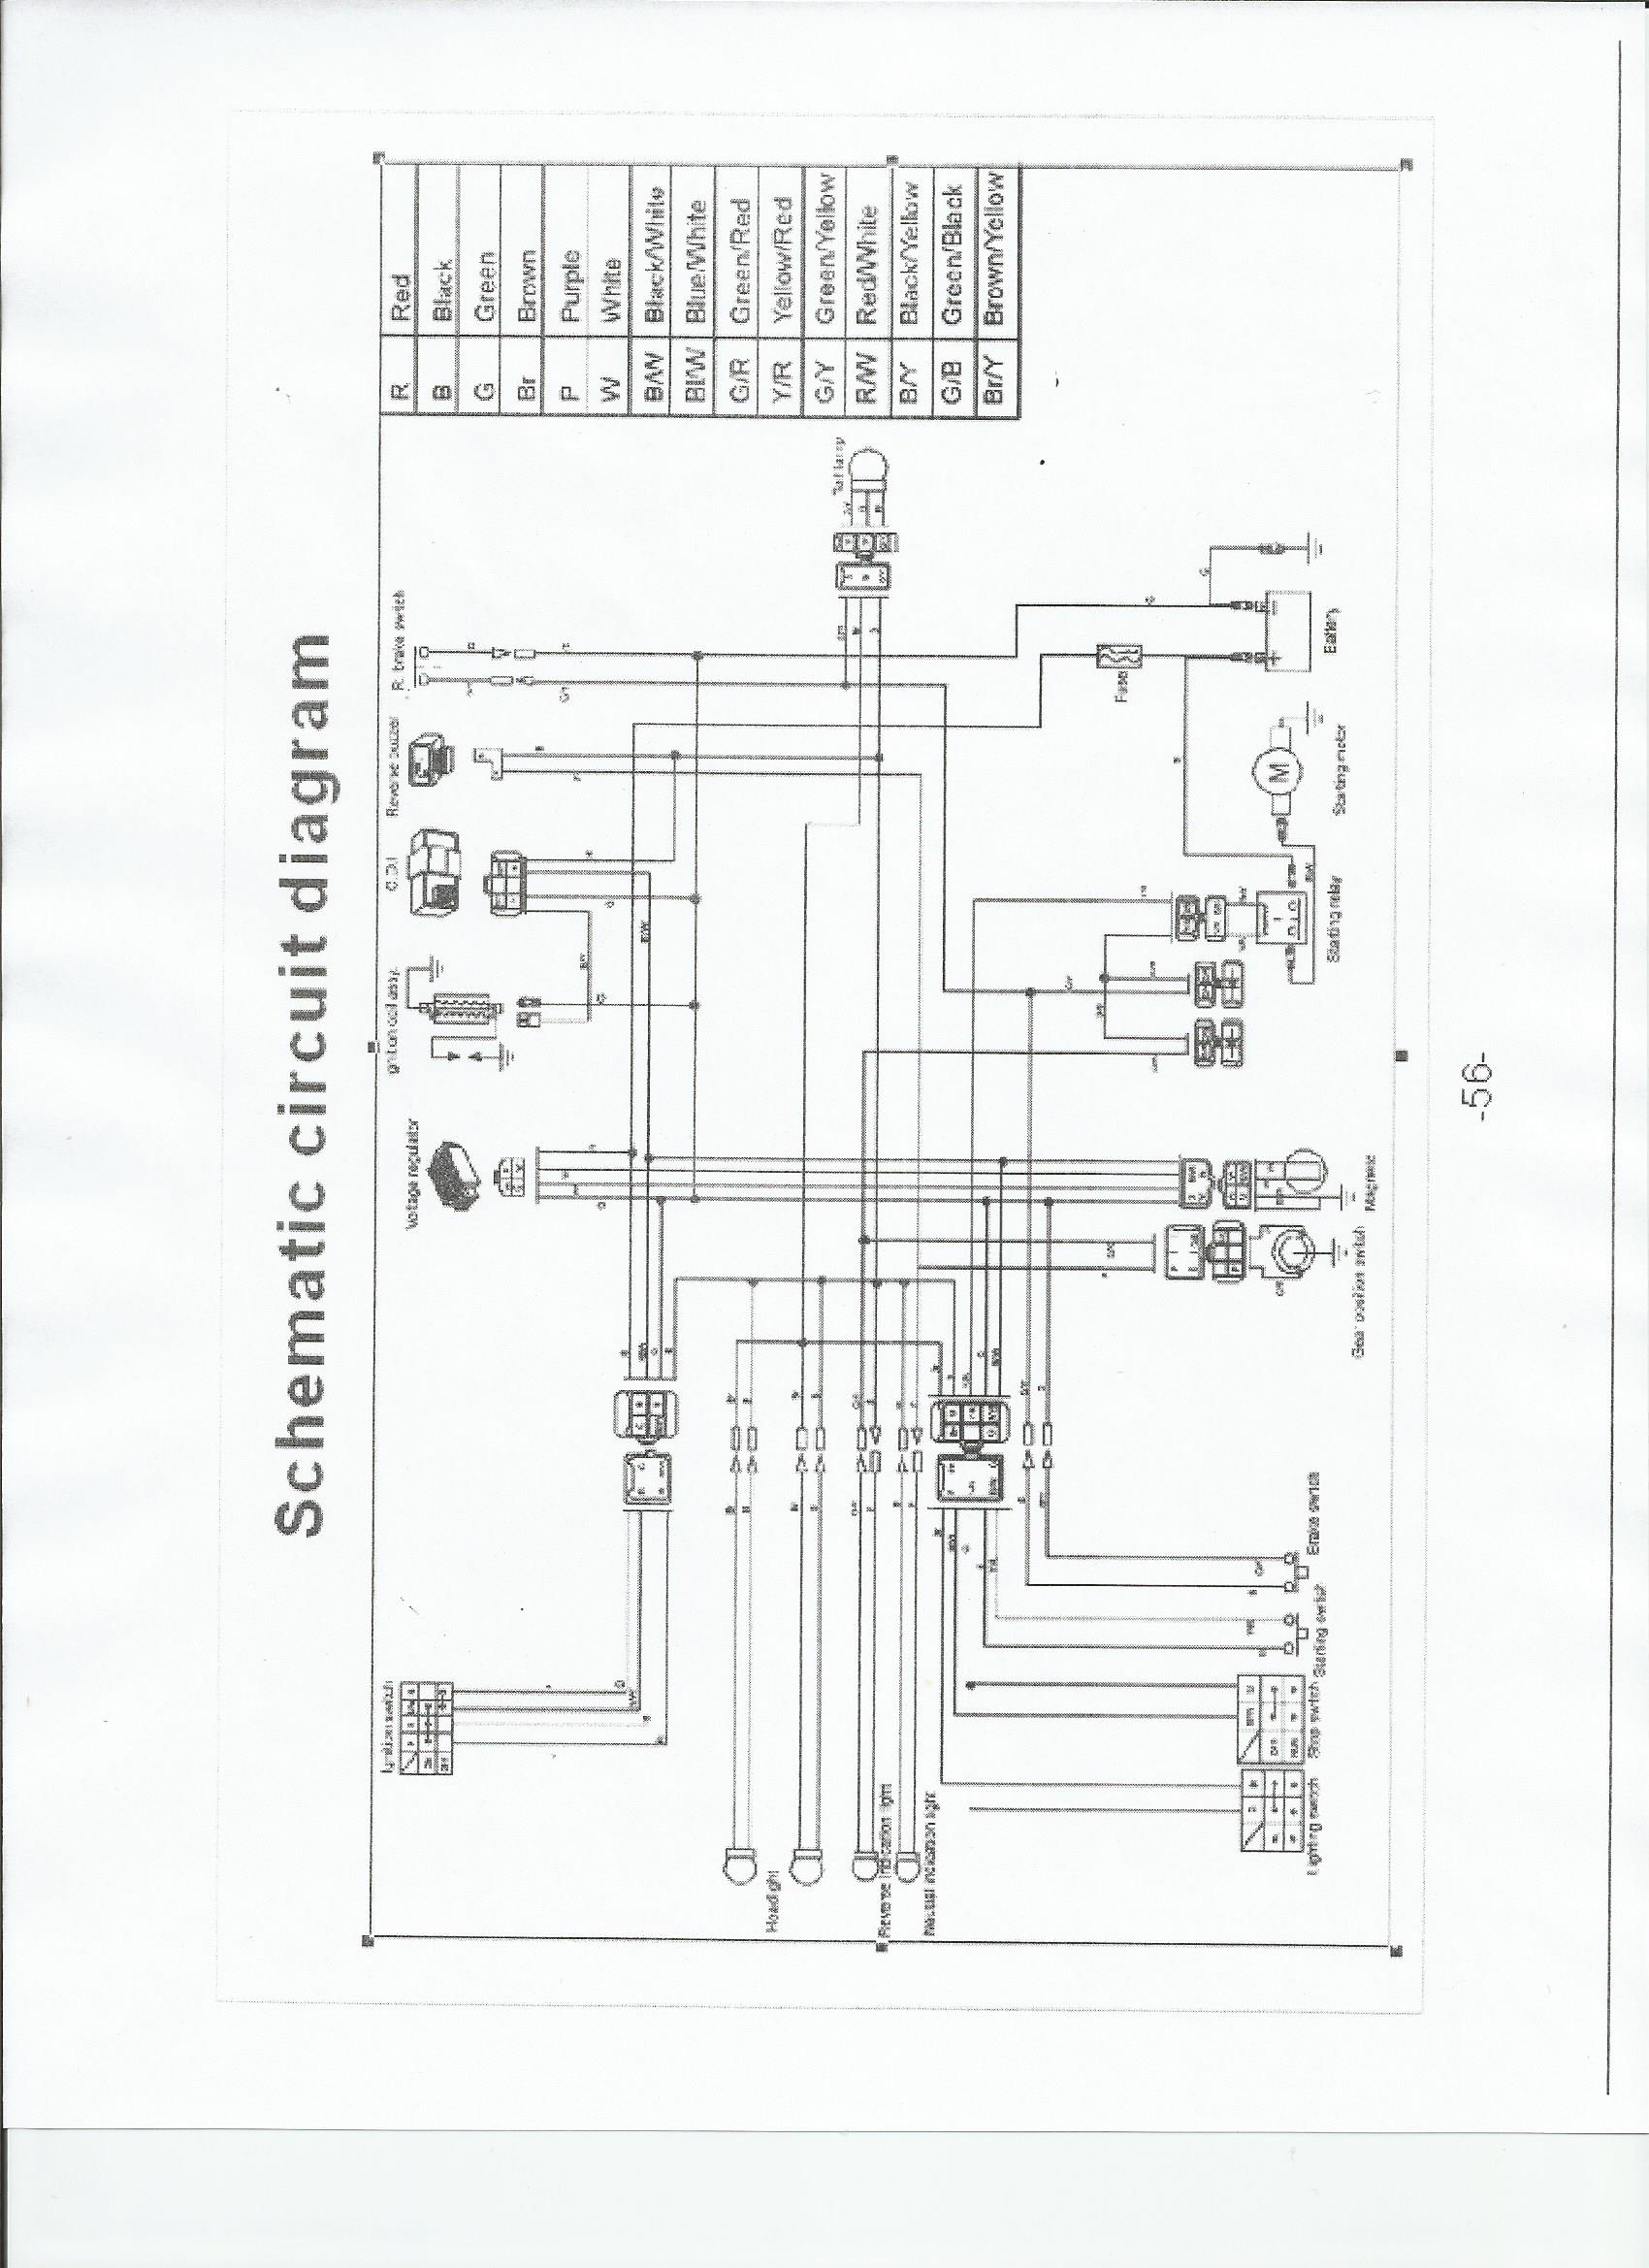 small resolution of rascal 600 scooter wiring diagram best wiring librarychinese scooter tao wiring diagram wiring diagramstao tao wiring